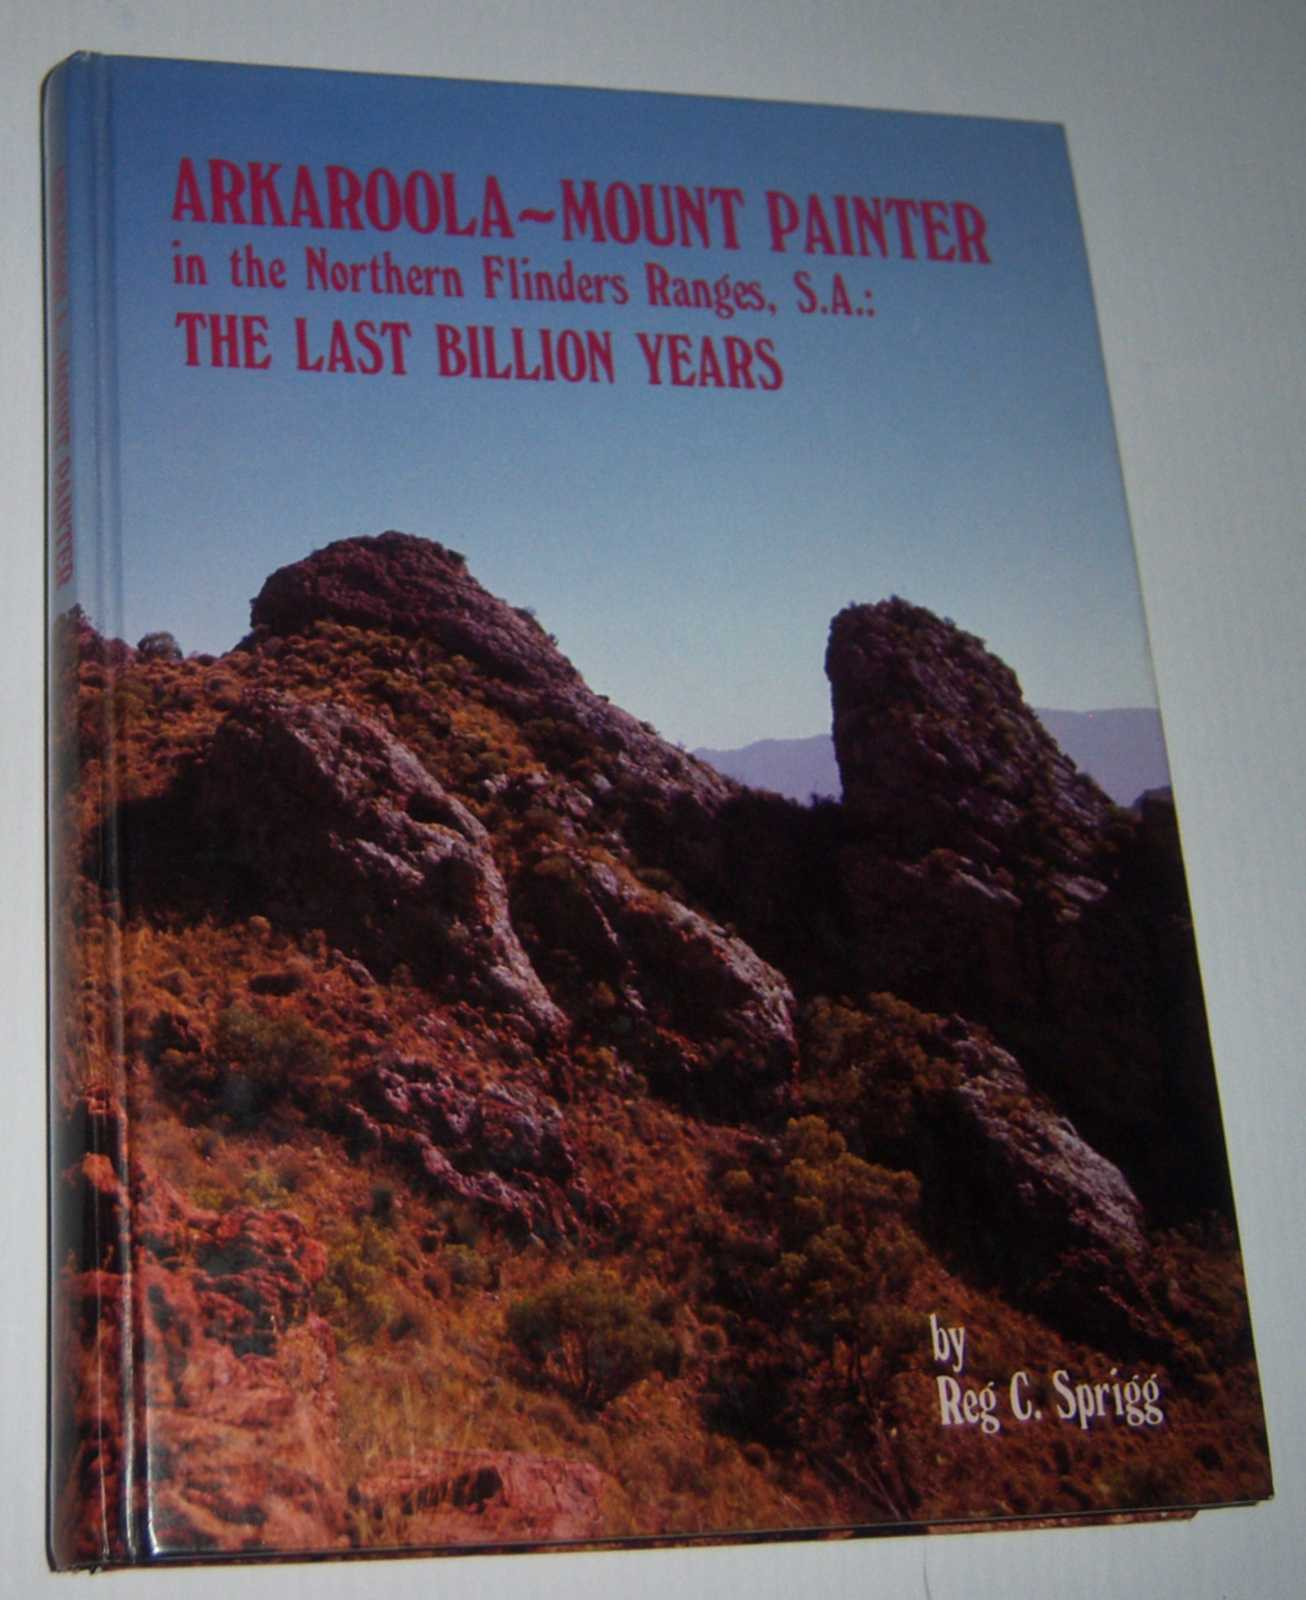 Image for ARKAROOLA-MOUNT PAINTER IN THE NORTHERN FLINDERS RANGES, S.A: The Last Billion Years  (Signed Copy)